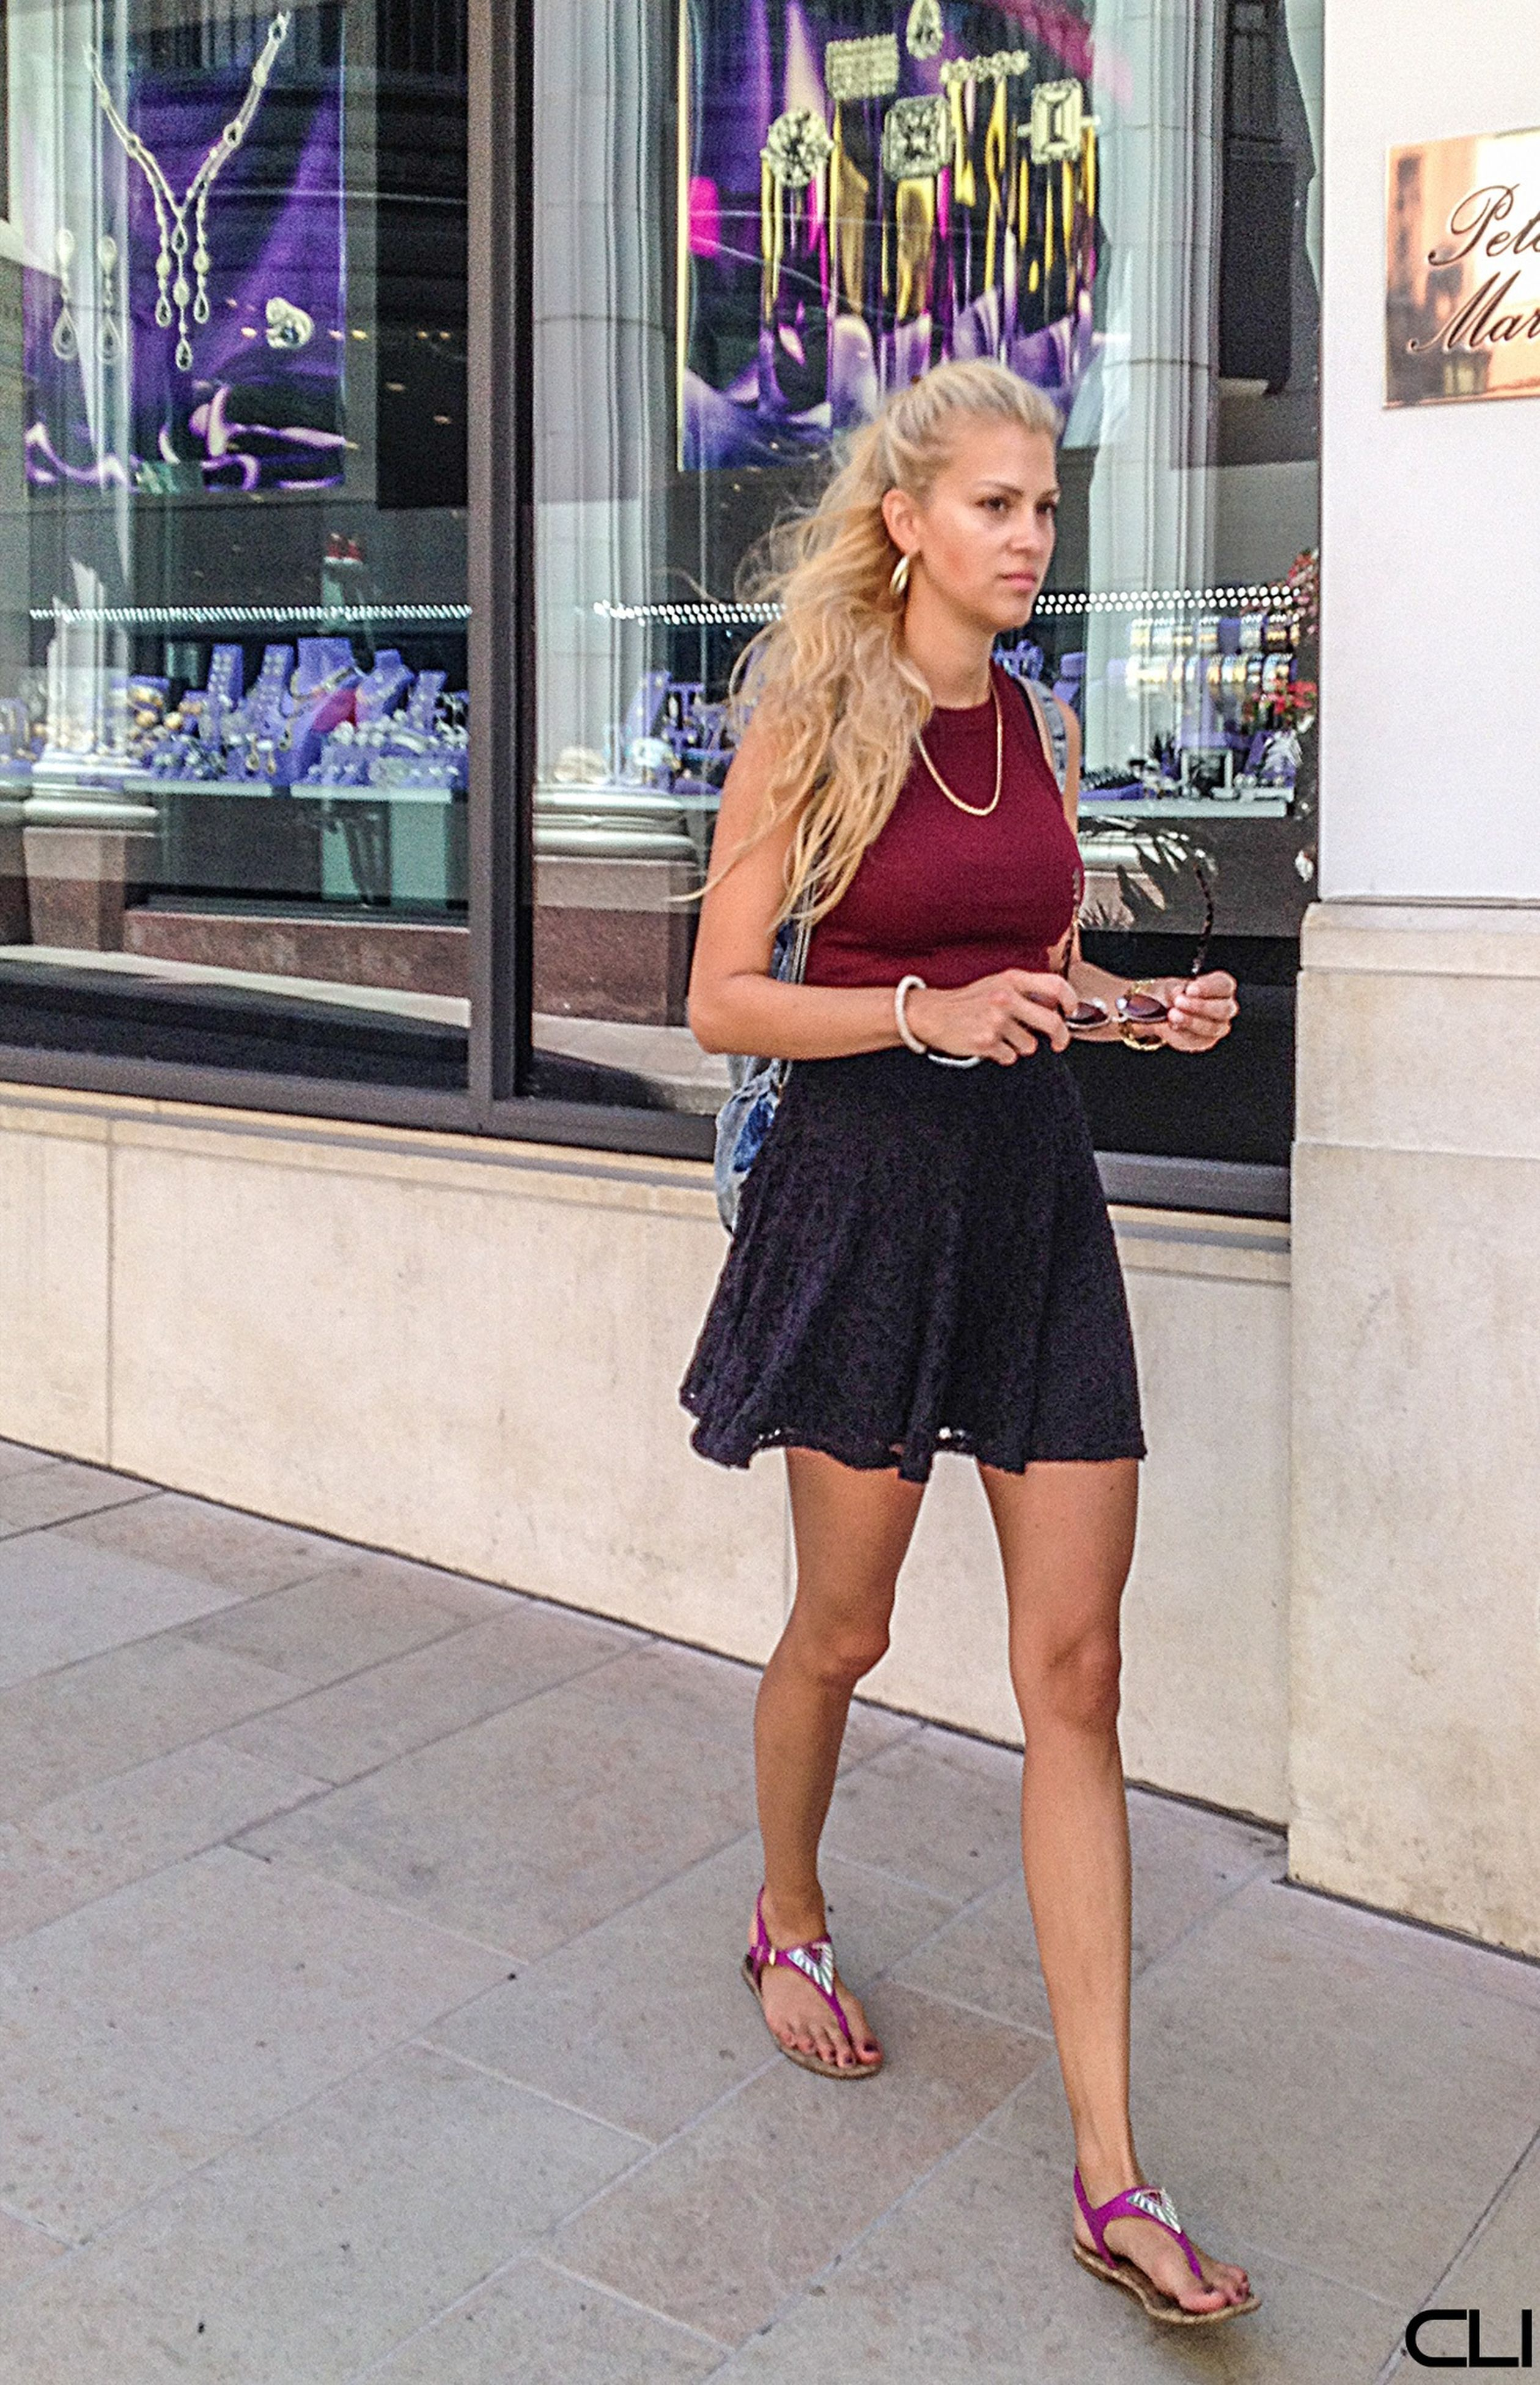 full length, young adult, lifestyles, casual clothing, young women, person, front view, standing, leisure activity, building exterior, built structure, architecture, fashion, portrait, street, long hair, dress